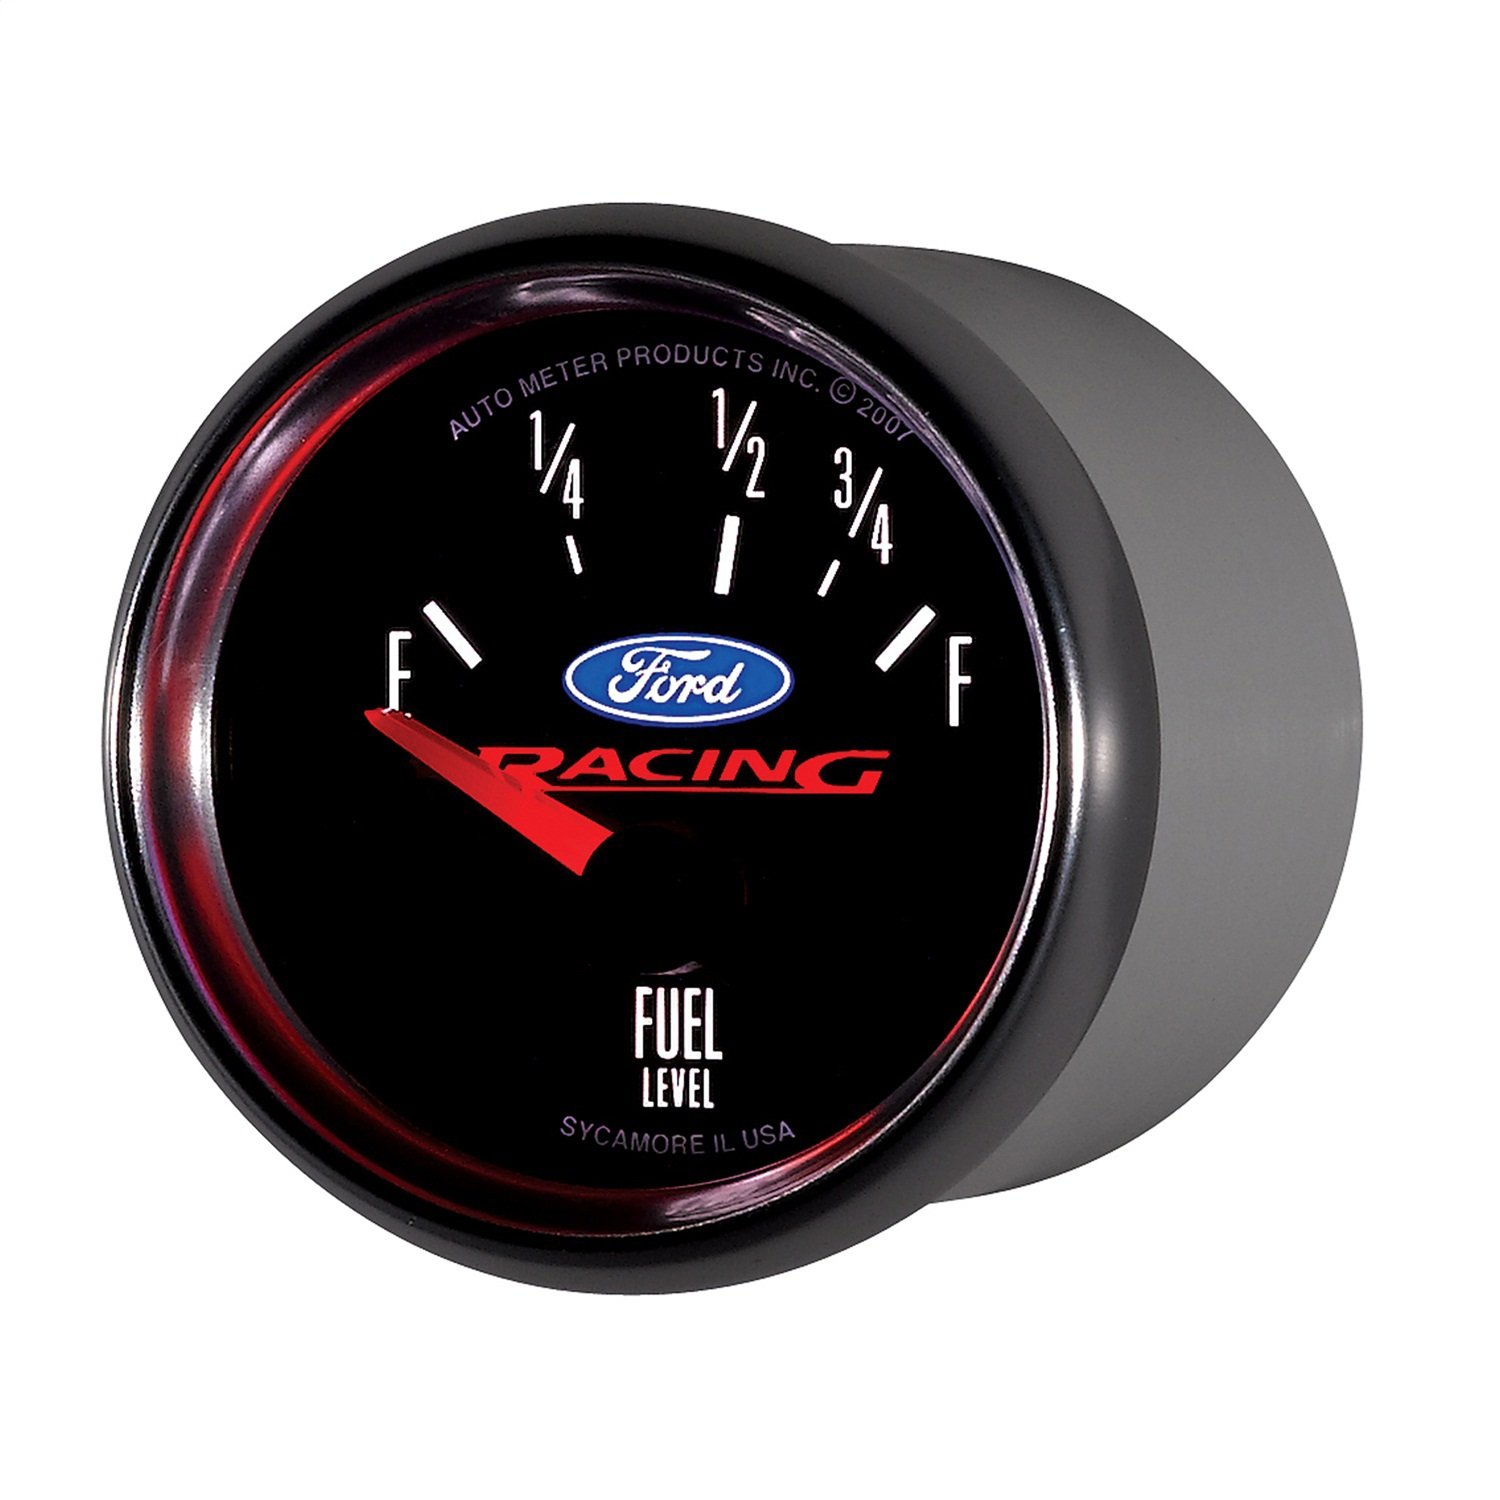 Auto Meter 880075 2-1/16'' Empty 73 Ohm/Full 10 Ohm Fuel Level Gauge for Ford Racing